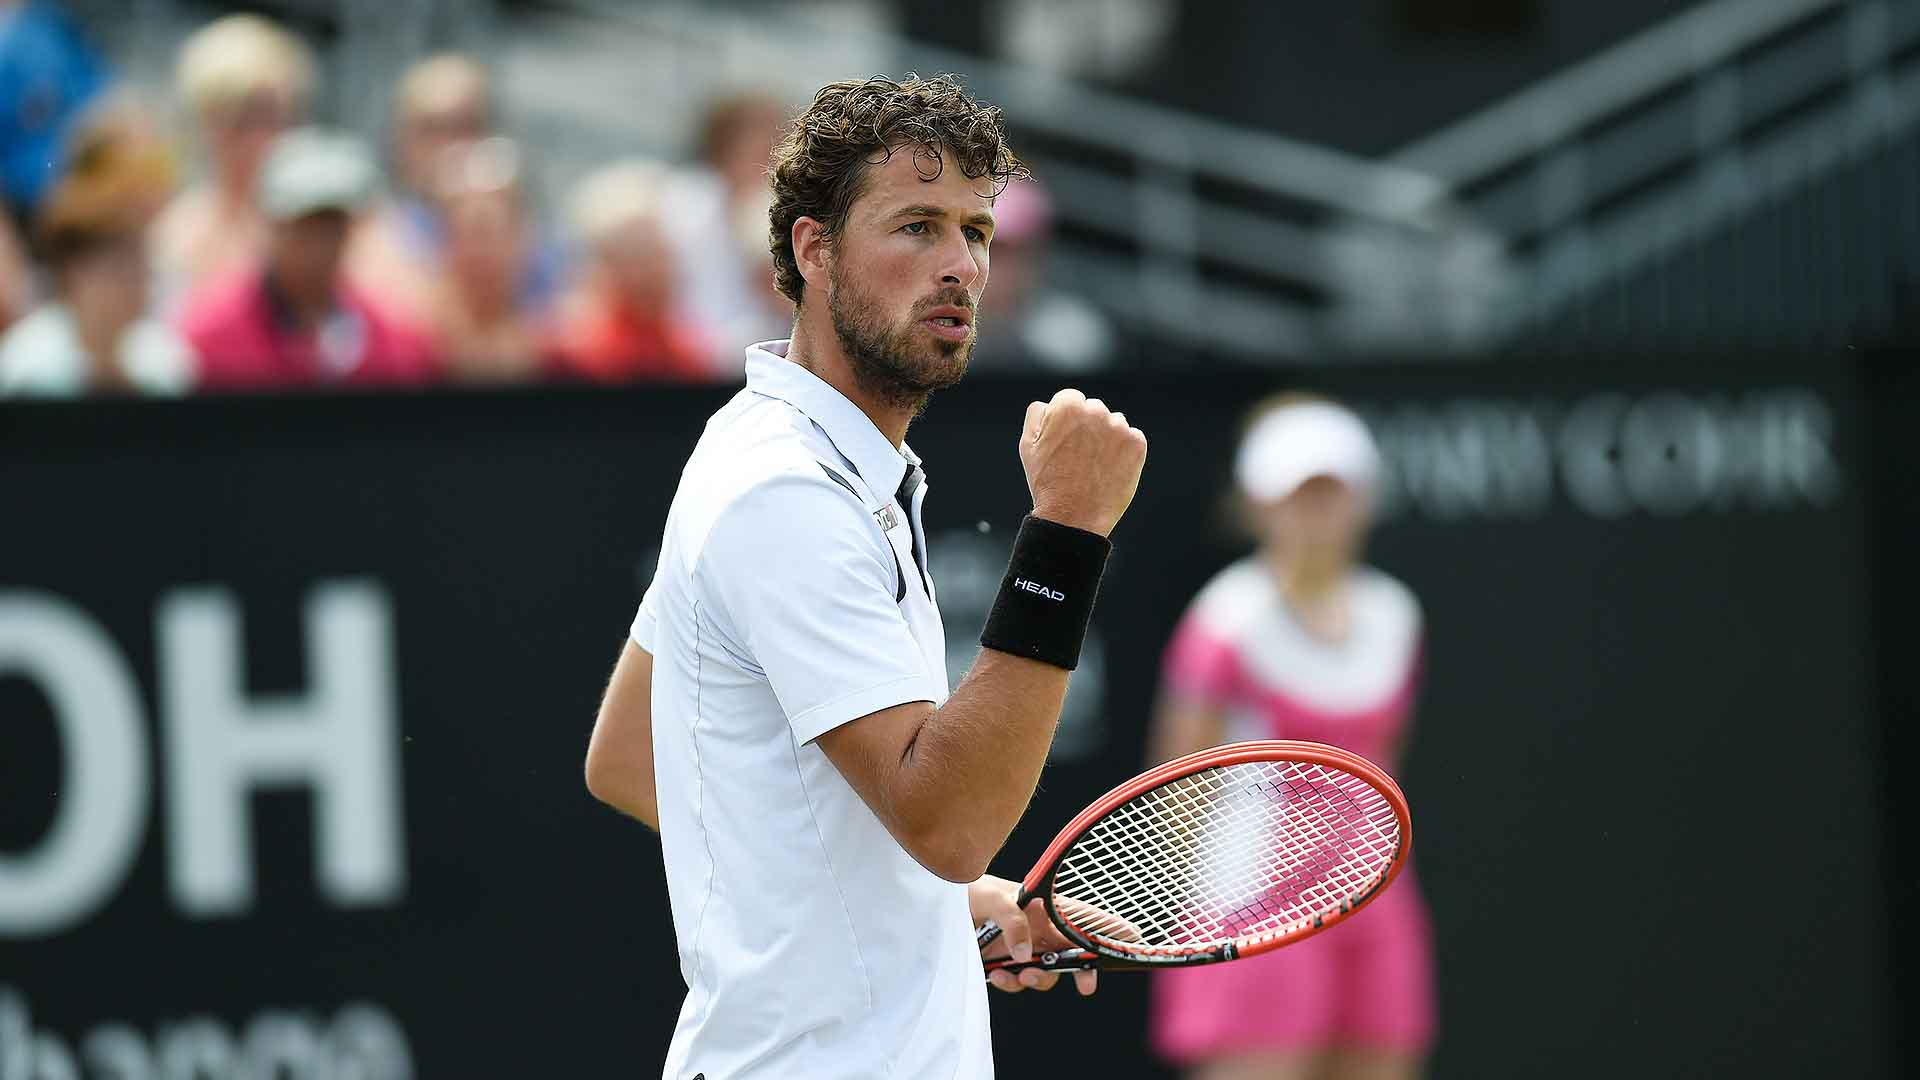 Robin Haase VS Diego Schwartzman ( BETTING TIPS, Match Preview & Expert Analysis )™